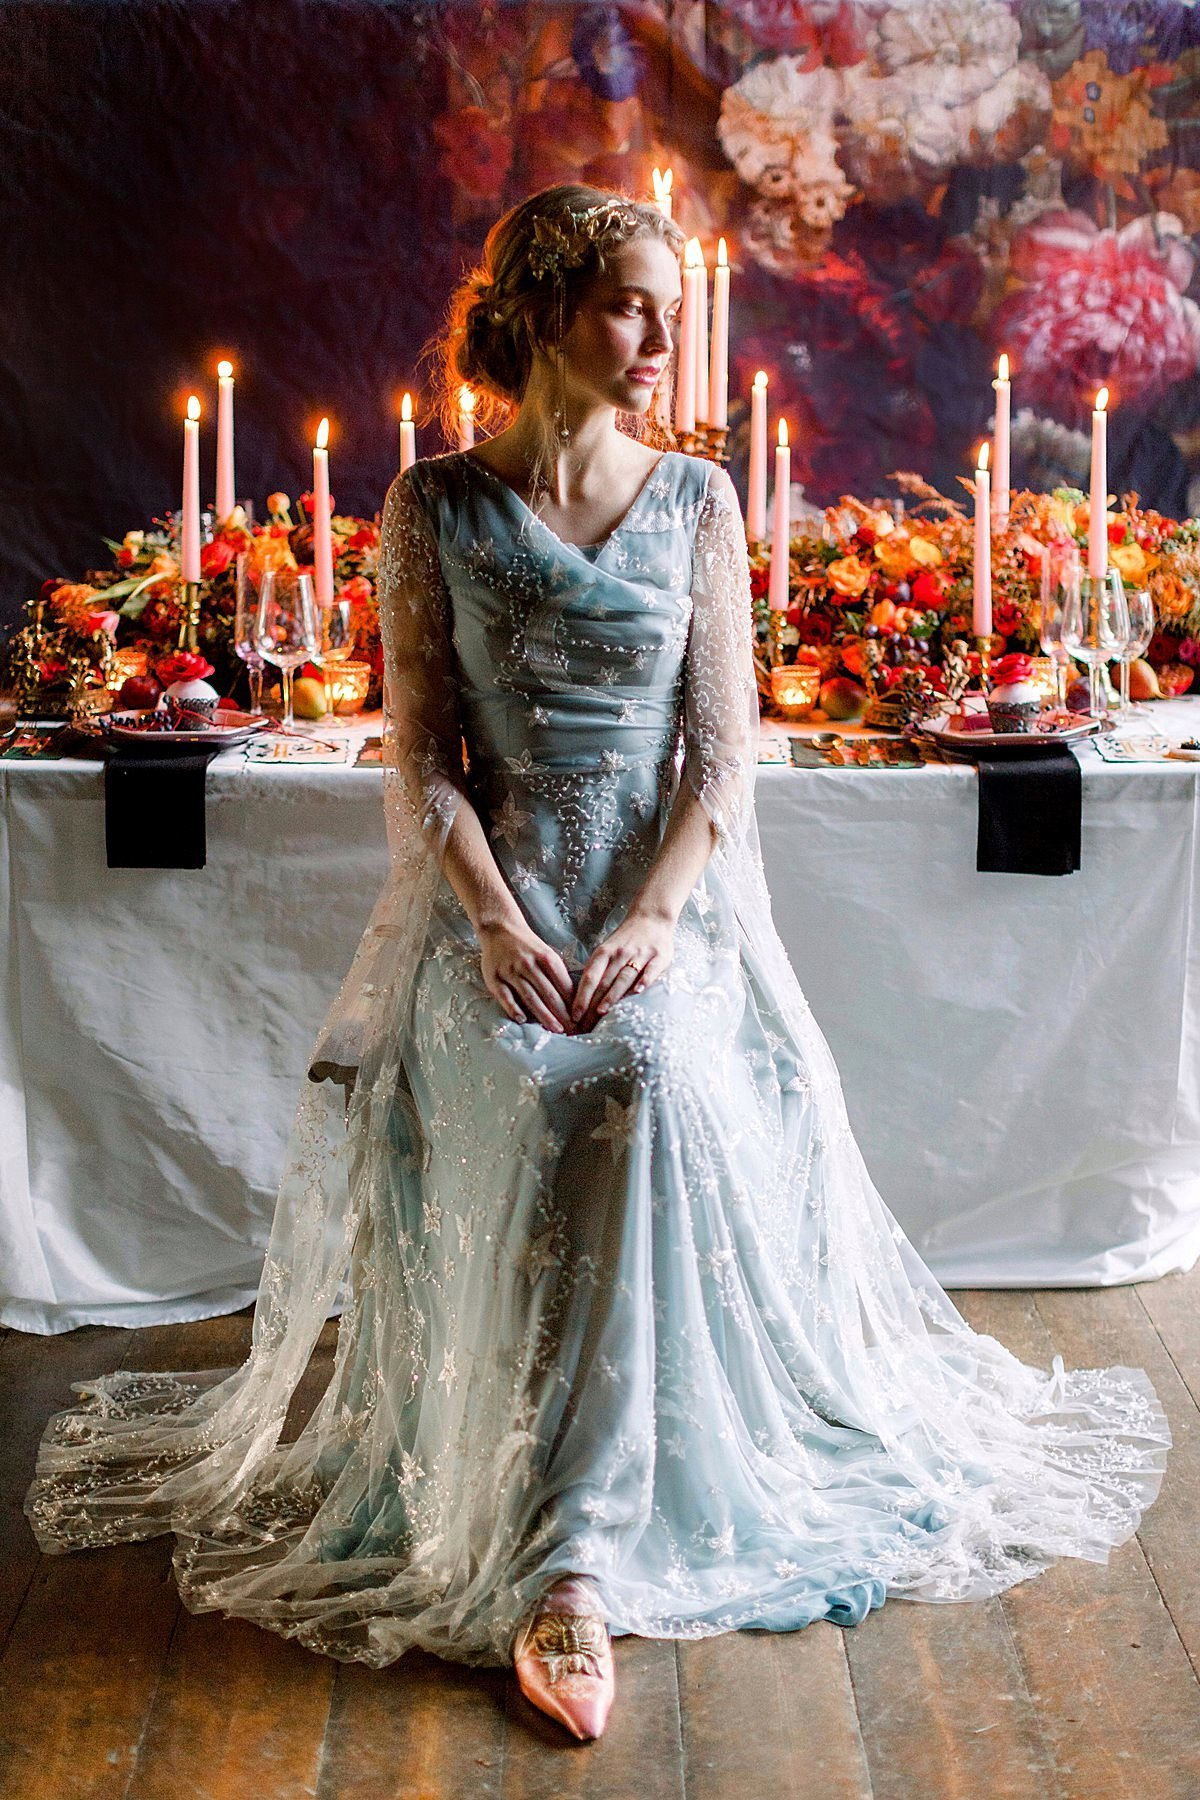 Briar-Rose-Starry-Dress-Candlelight-JFD-JoBradbury (3)